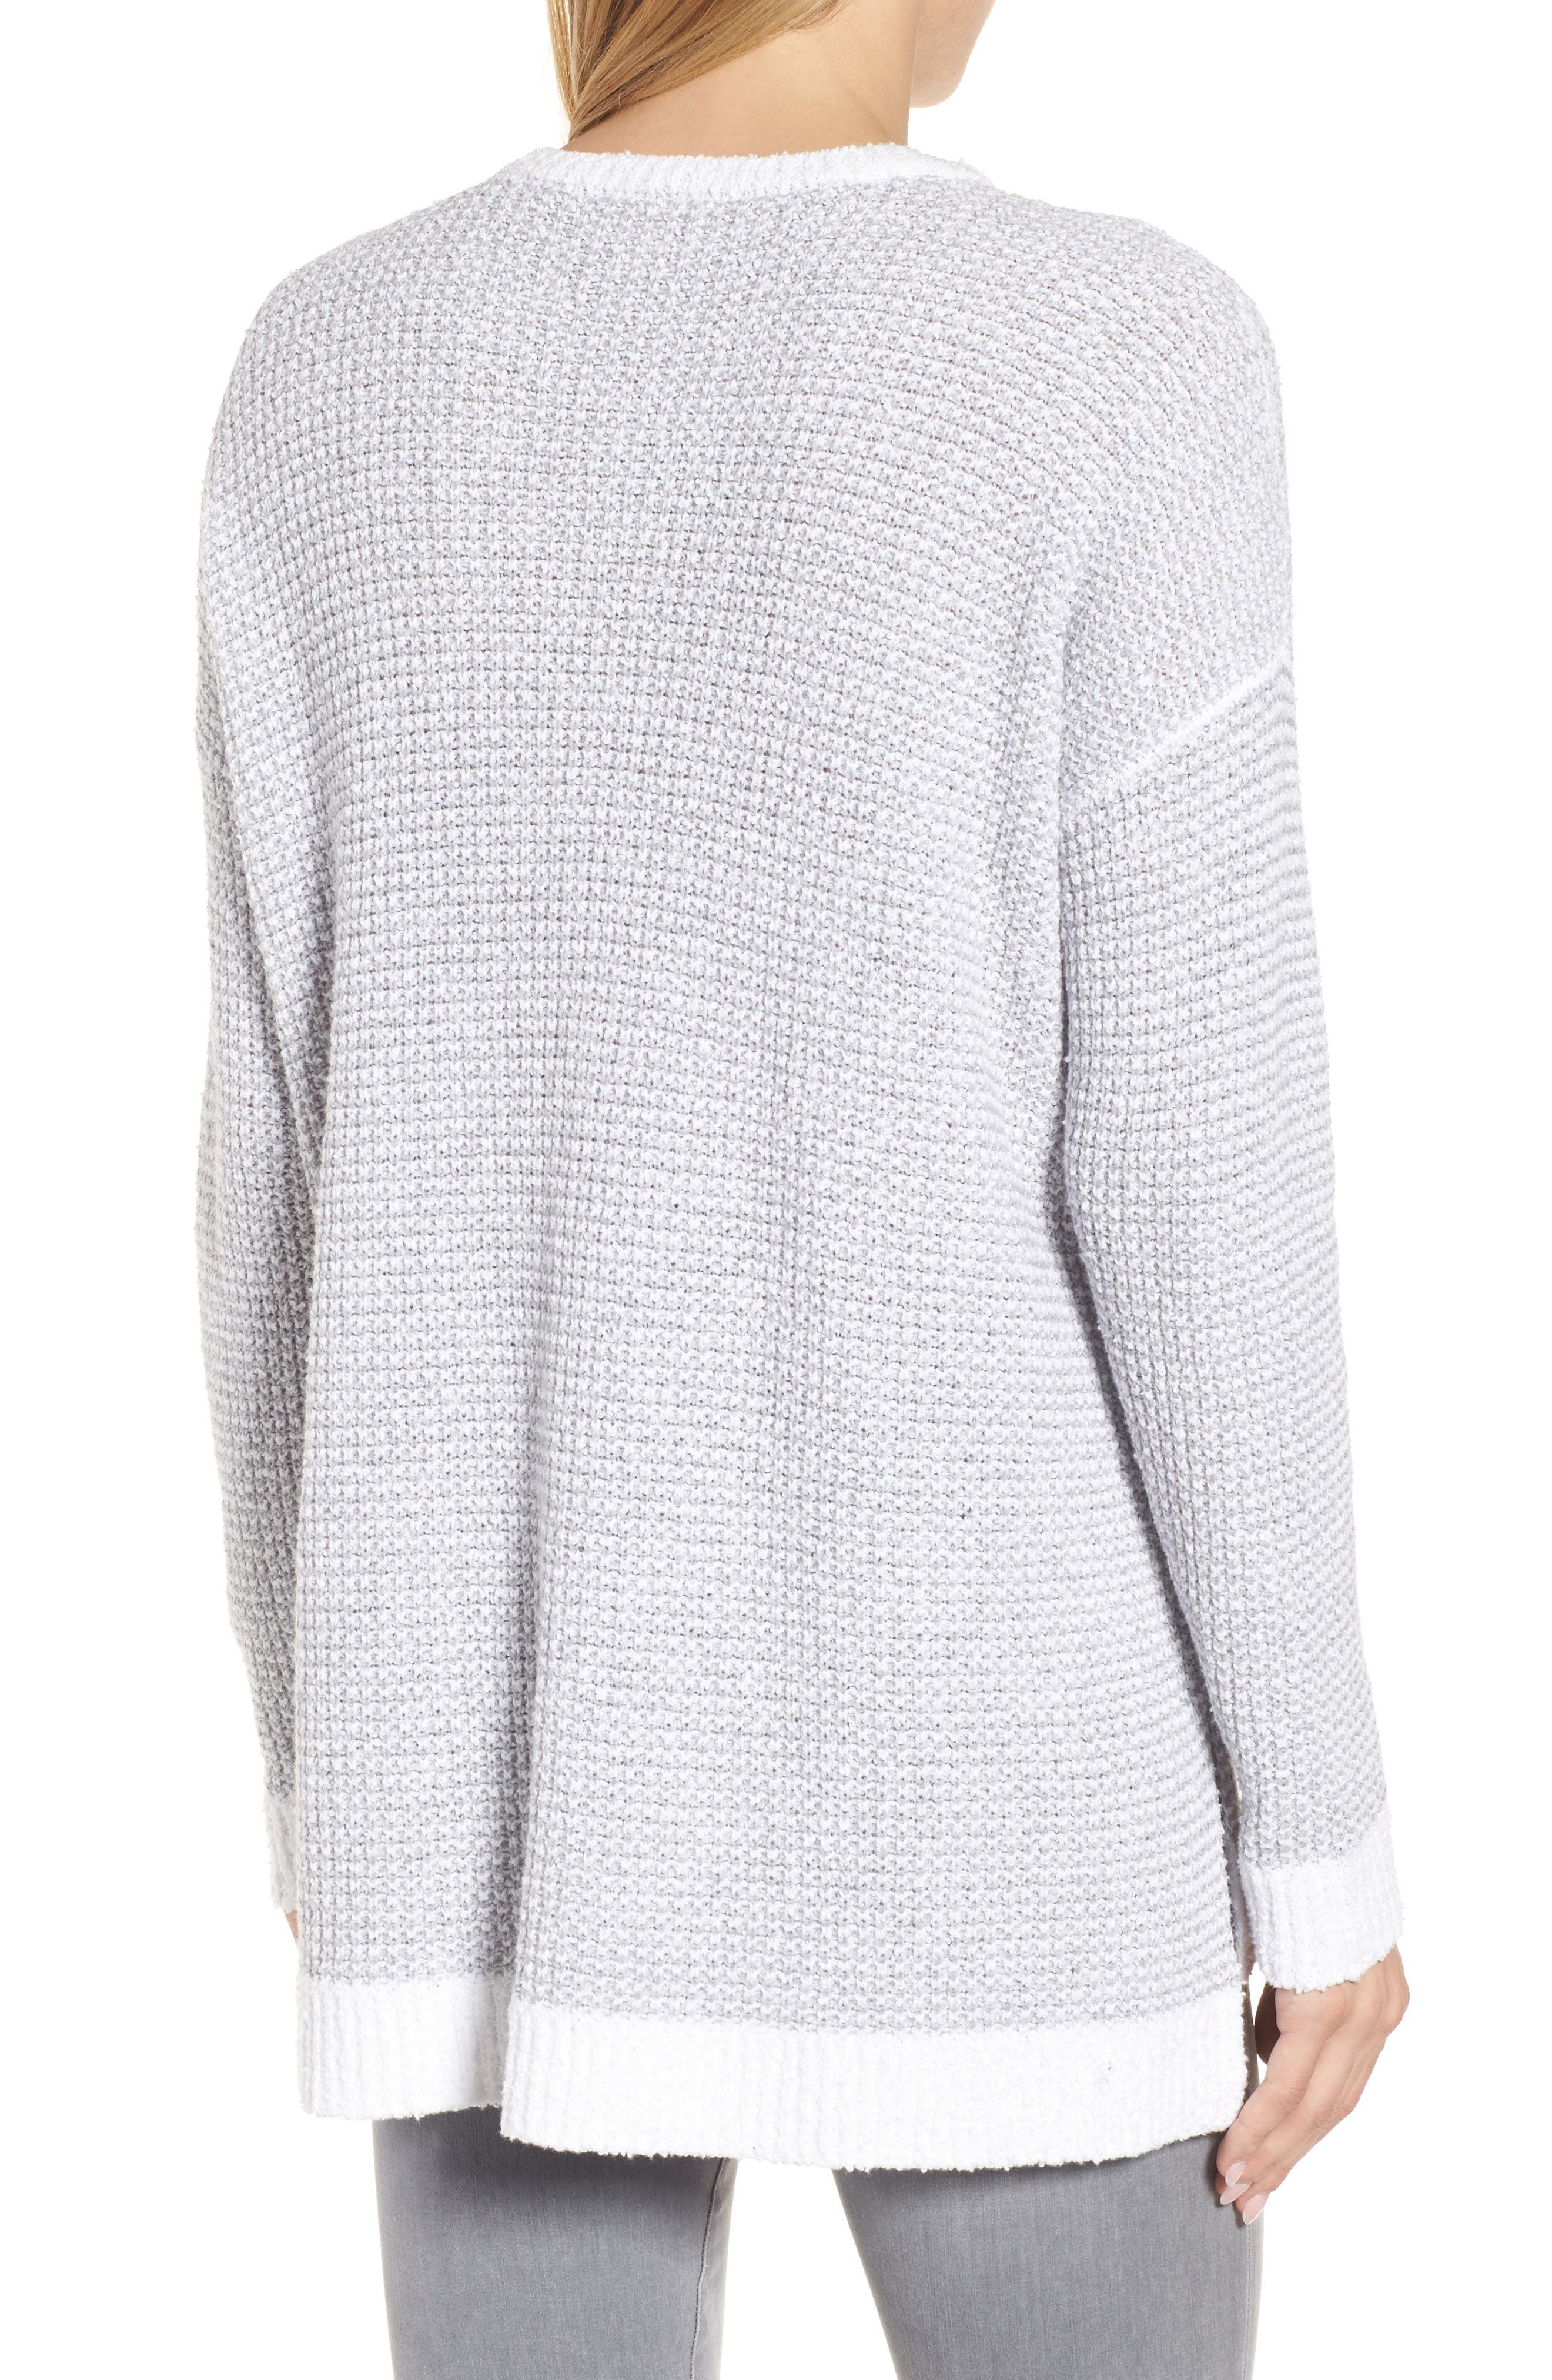 Waffled Organic Cotton Sweater,                             Alternate thumbnail 2, color,                             022